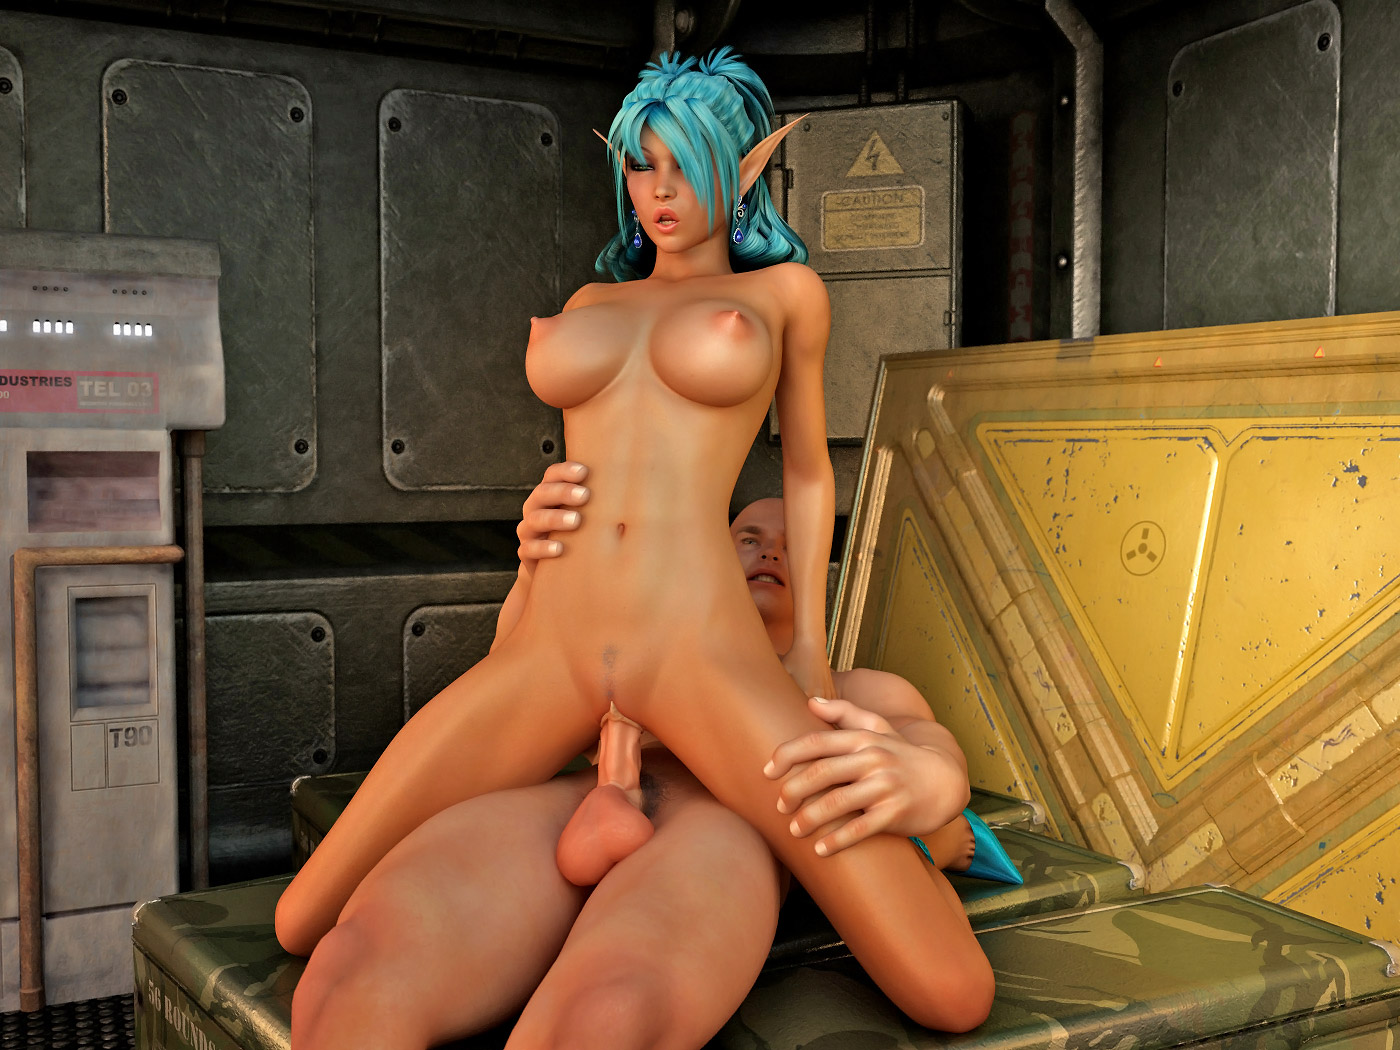 Elf girl fucked in water erotic thumbs